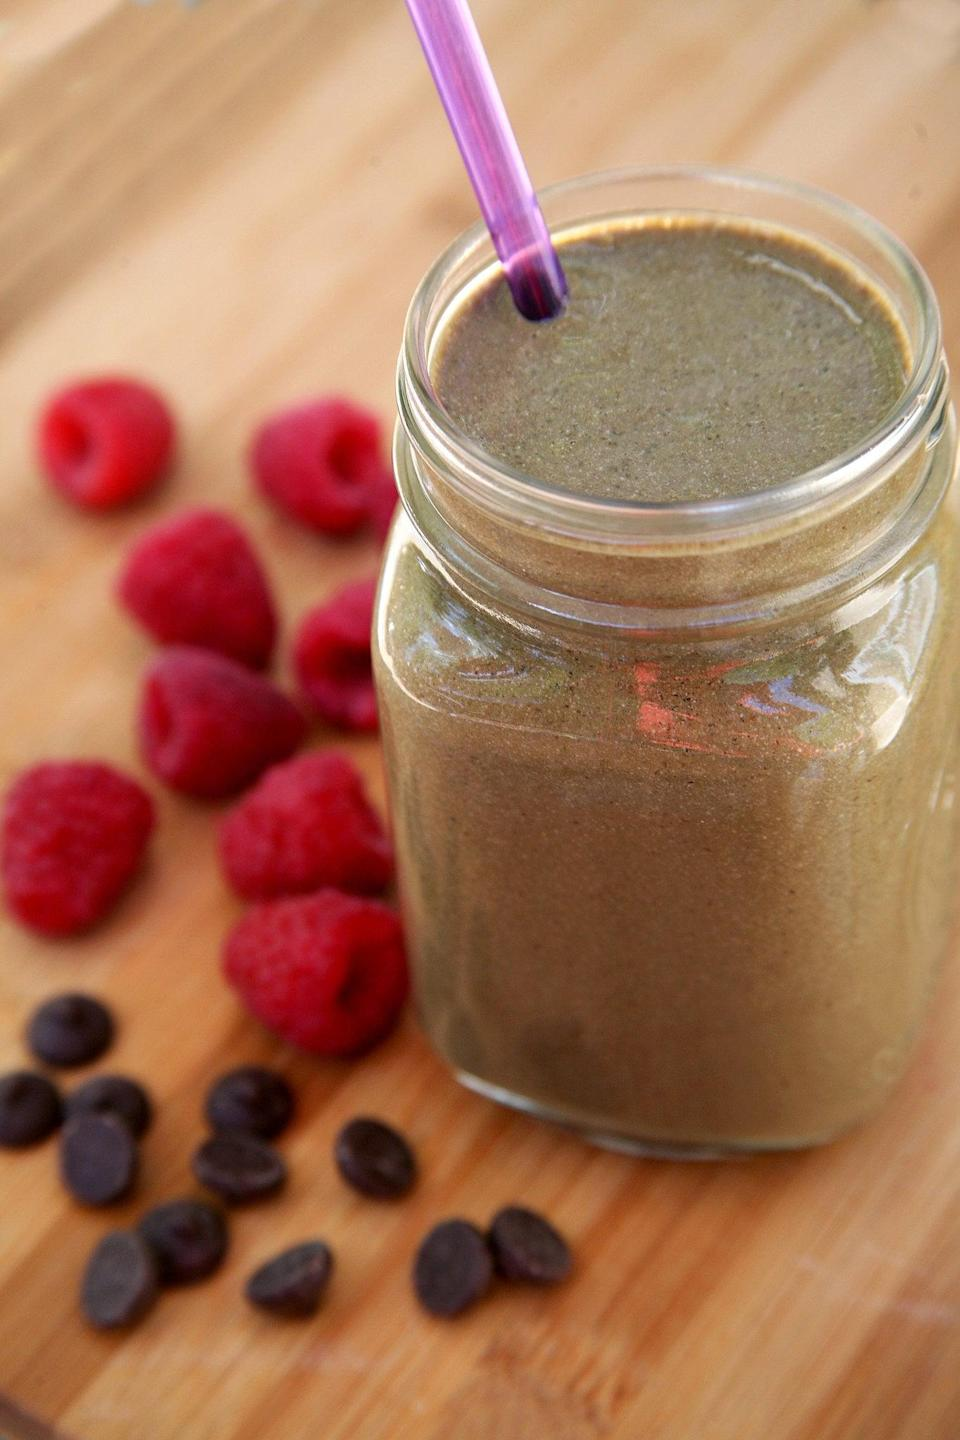 """<p>This smoothie is packed with protein and will fulfill all your chocolate cravings.</p> <p><strong>Protein:</strong> 22.1 grams</p> <p><strong>Get the recipe:</strong> <a href=""""https://www.popsugar.com/fitness/Chocolate-Vegan-Smoothie-34820459"""" class=""""link rapid-noclick-resp"""" rel=""""nofollow noopener"""" target=""""_blank"""" data-ylk=""""slk:chocolate raspberry smoothie"""">chocolate raspberry smoothie</a></p>"""